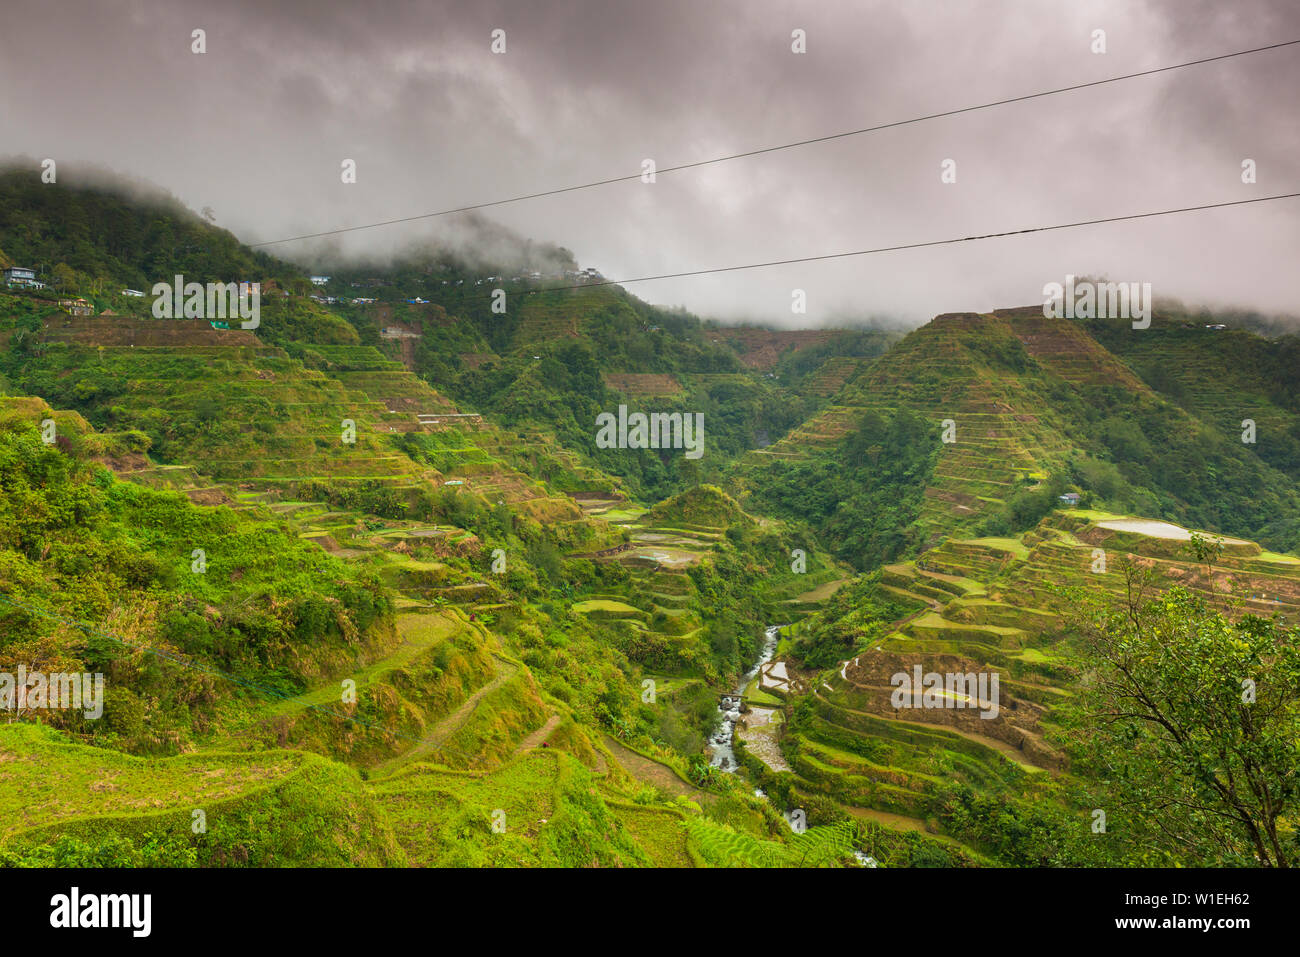 Rice Terraces, Banaue, UNESCO World Heritage Site, Luzon, Philippines, Southeast Asia, Asia - Stock Image